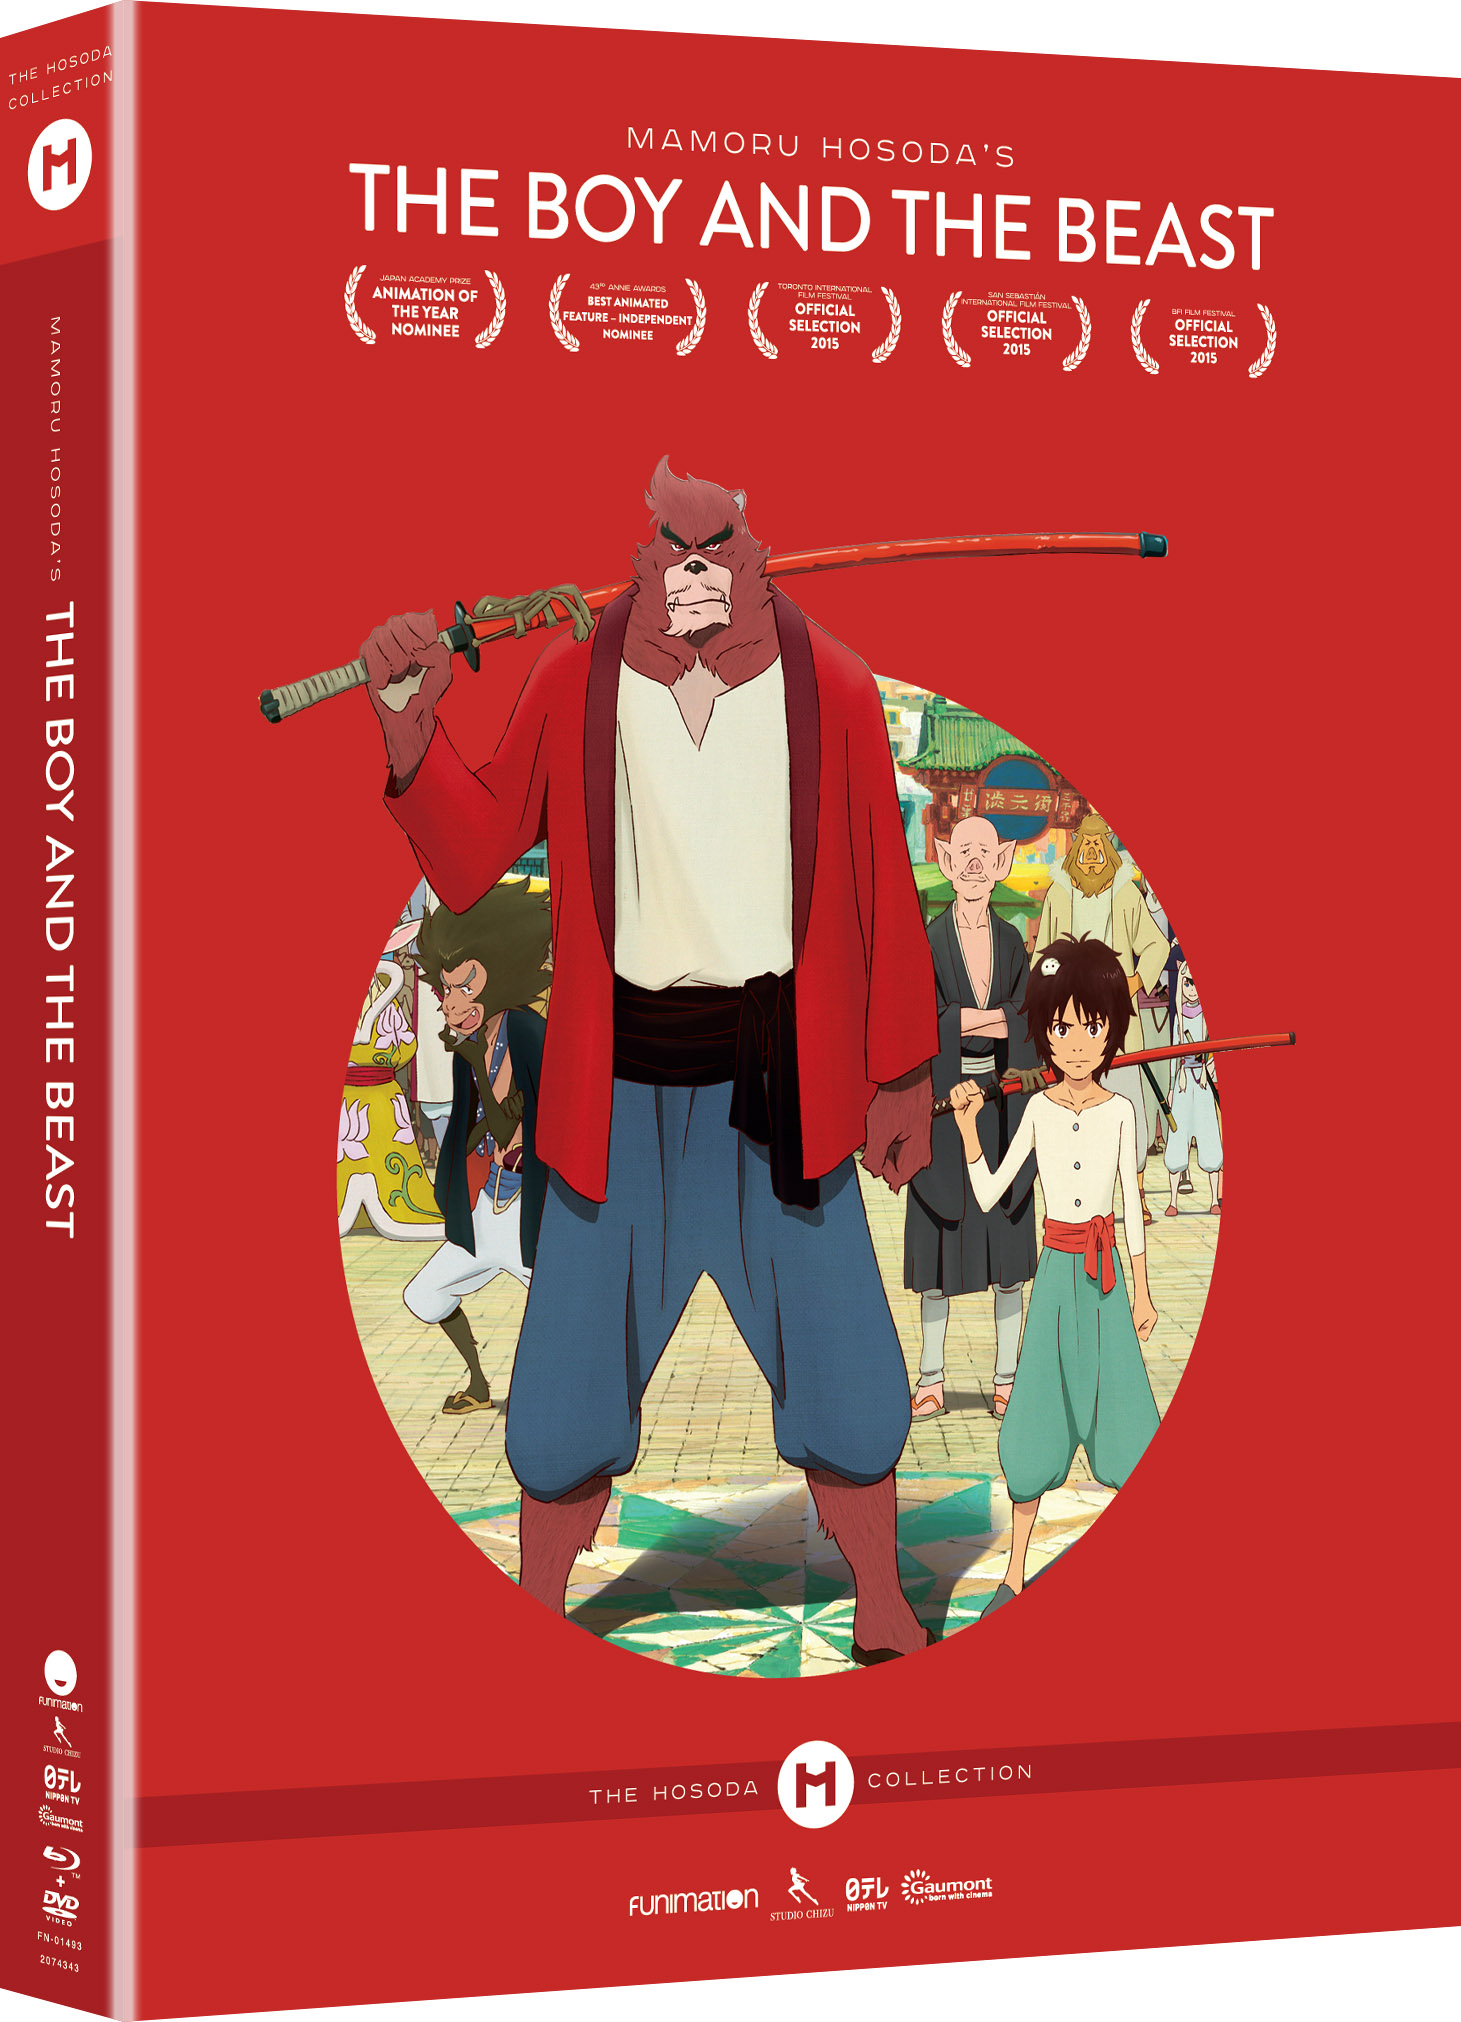 The Boy and the Beast Collector's Edition Blu-ray/DVD + UV